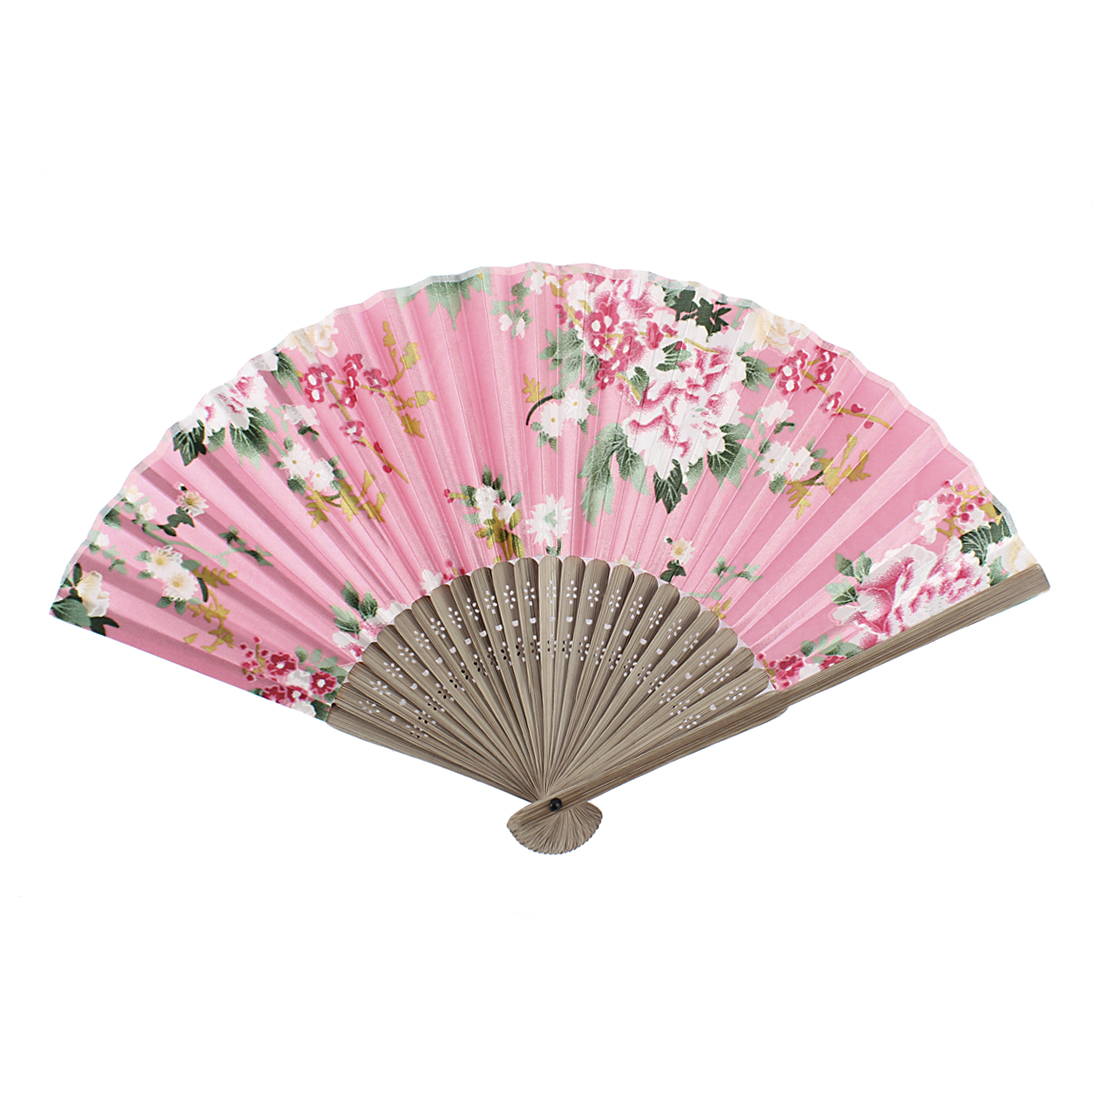 Flower Printed Wood Rib Foldable Summer Portable Hand Fan Pink Light Brown